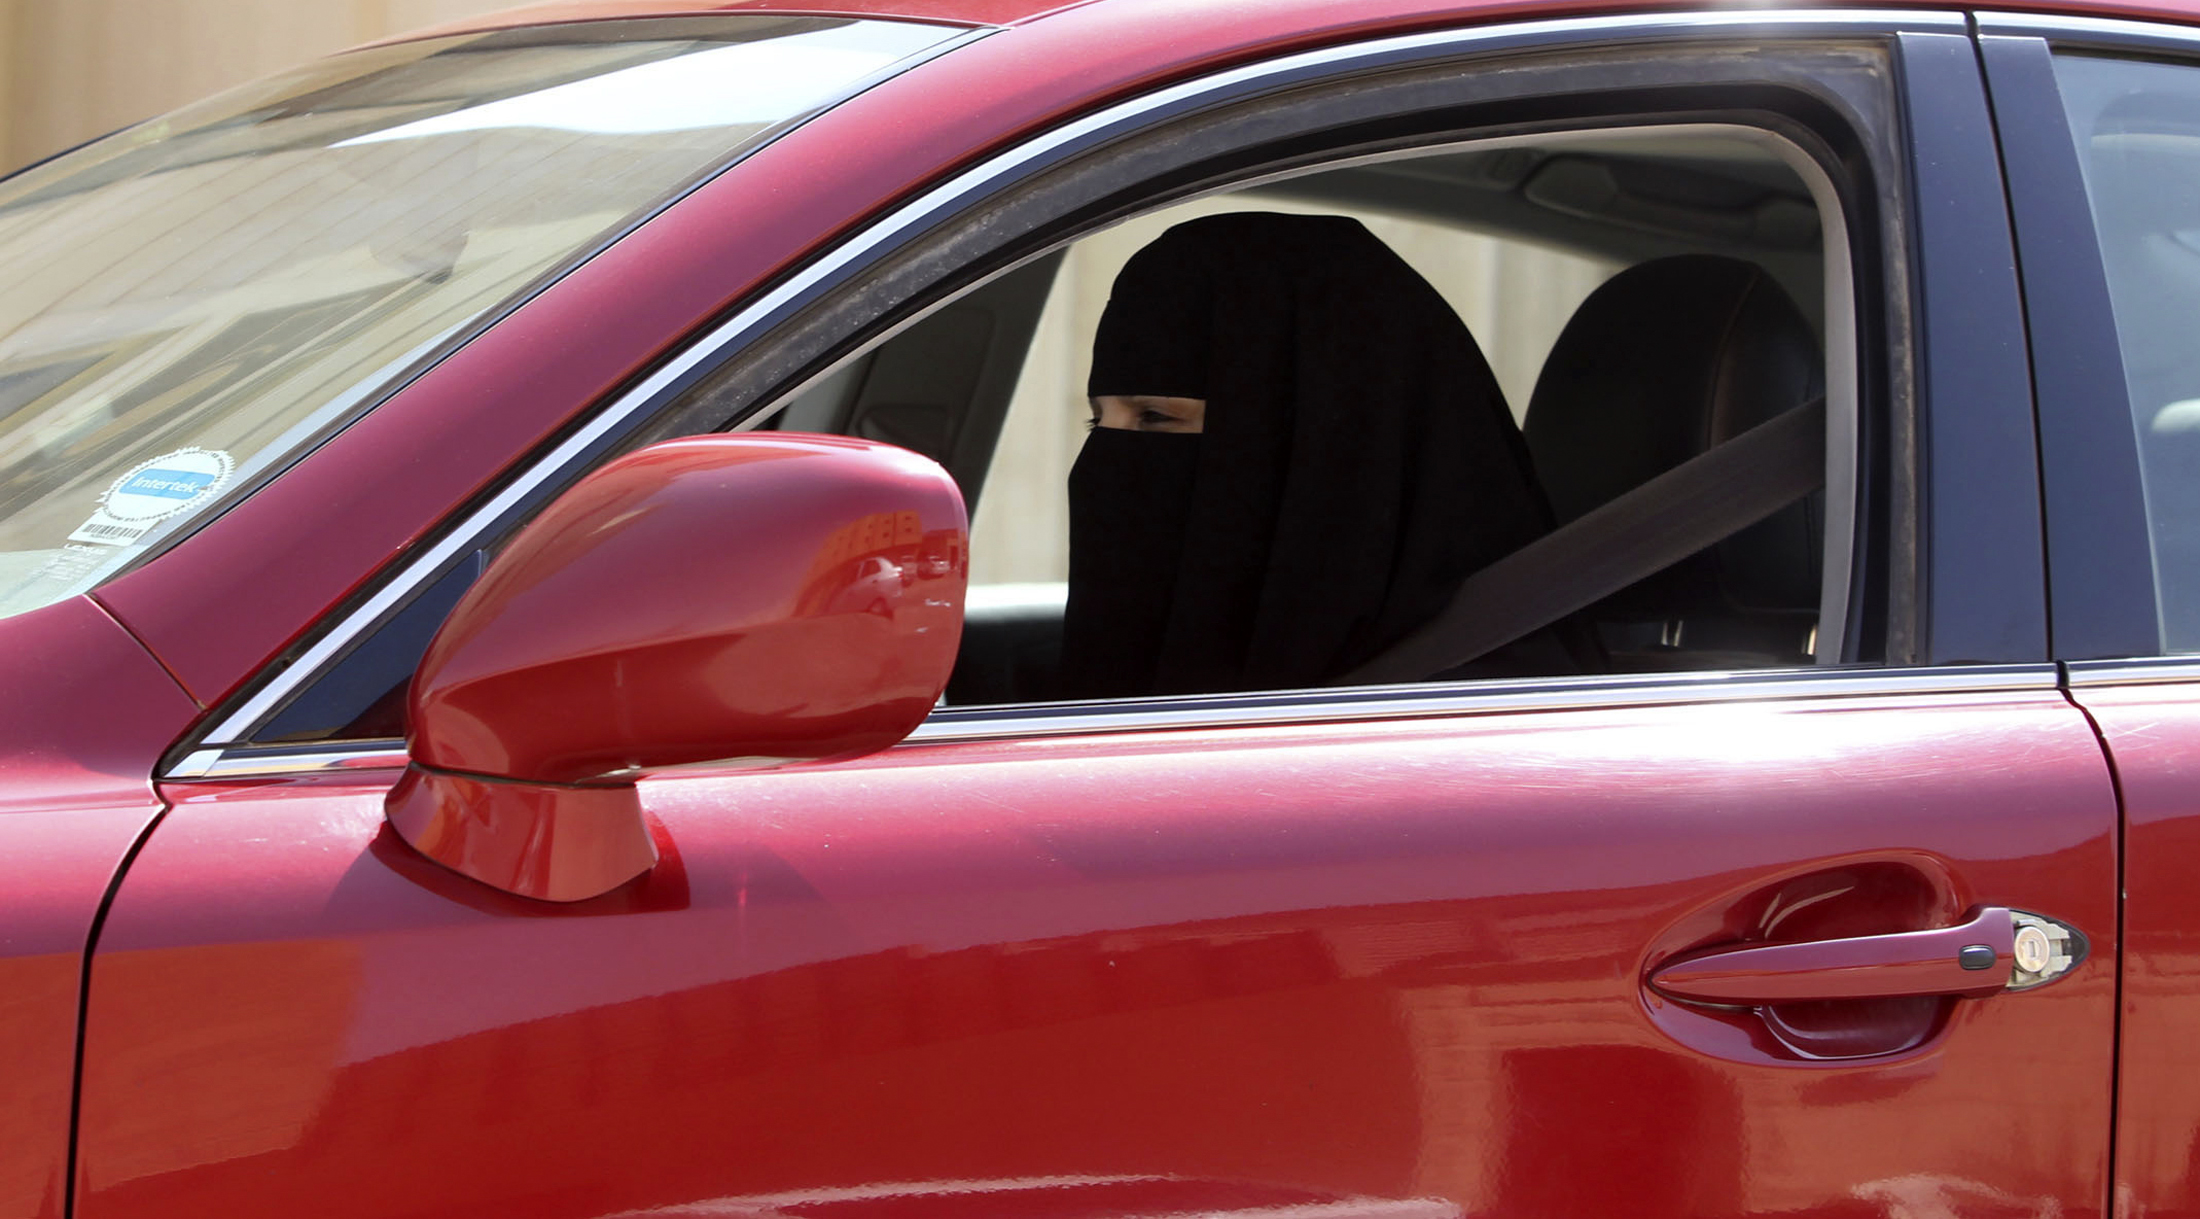 A woman drives a car in Saudi Arabia October 22, 2013. A conservative Saudi Arabian cleric has said women who drive risk damaging their ovaries and bearing children with clinical problems, countering activists who are trying to end the Islamic kingdom's male-only driving rules. Saudi Arabia is the only country in the world where women are barred from driving, but debate about the ban, once confined to the private sphere and social media, is increasingly spreading to public forums too.